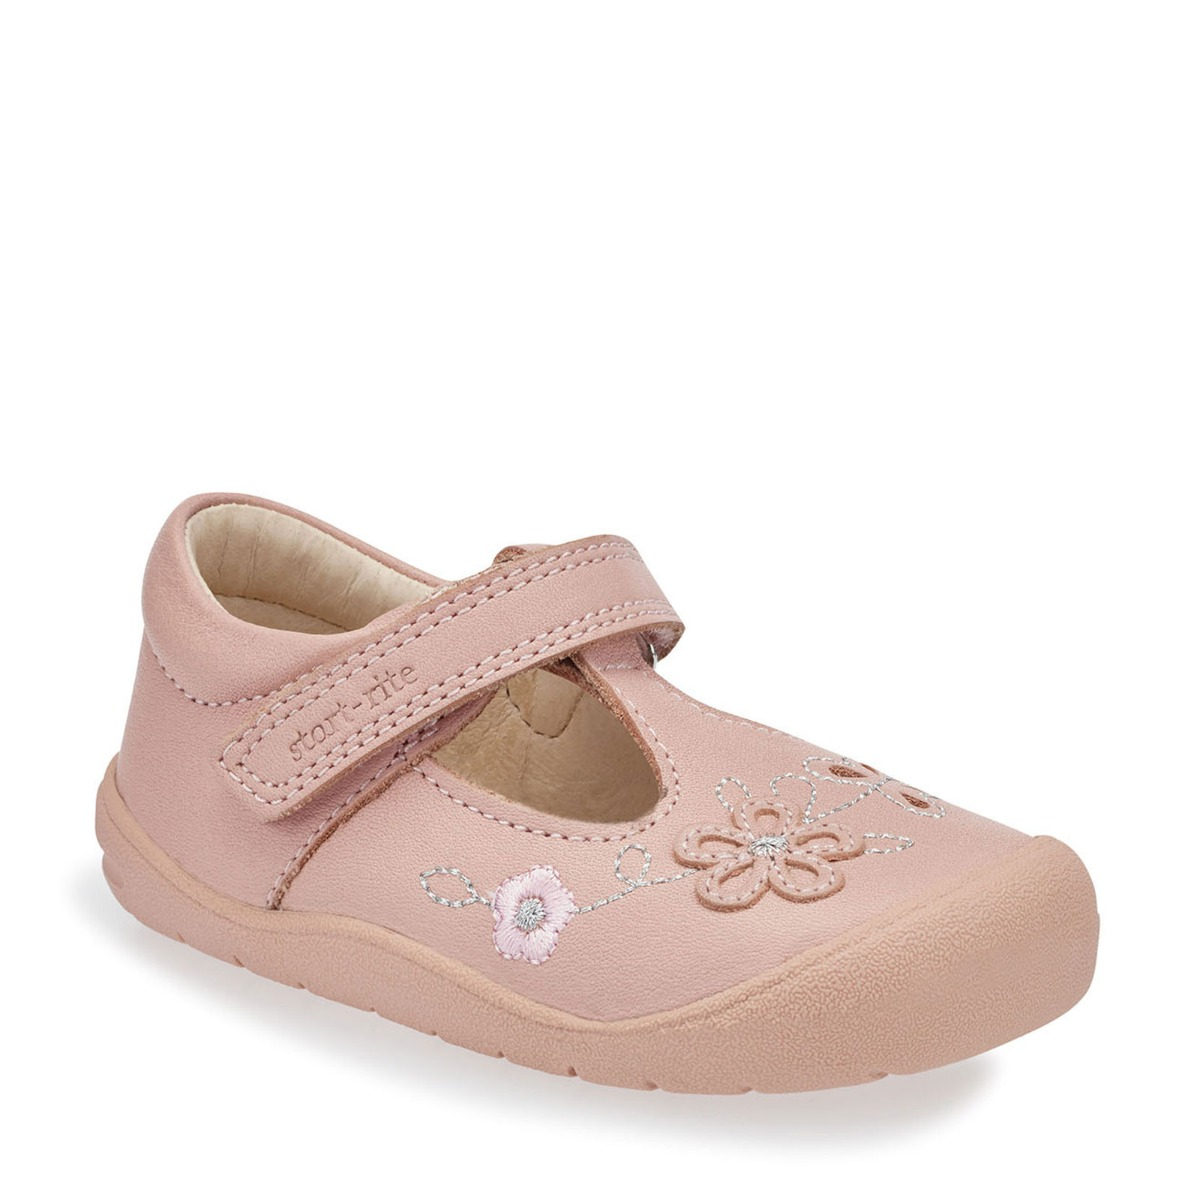 7fc3565ae52a Baby pre-walkers